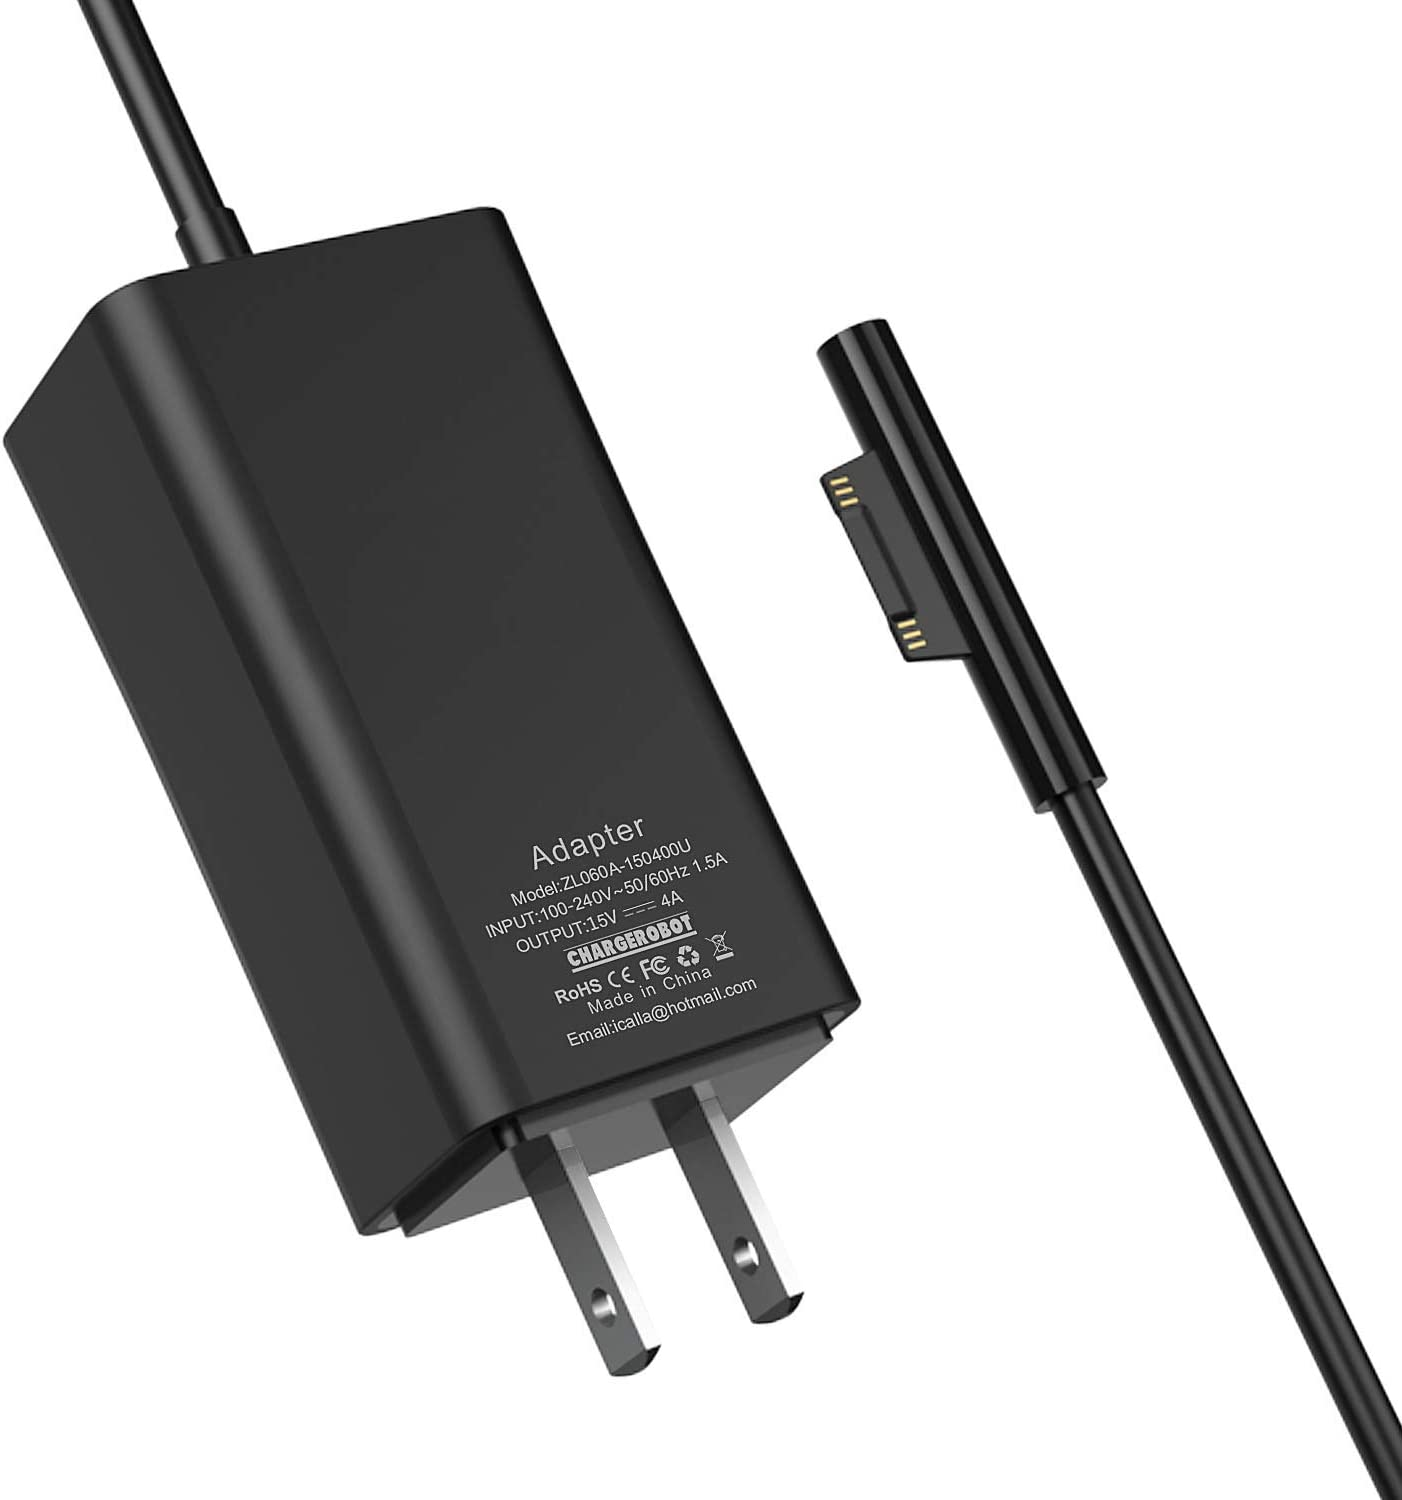 Microsoft Surface Pro Charger,65W Mini Travel Charger for Surface Pro 3/4/5/6 2017 Tablet/Surface Go/Surface Laptop/Surface Book,Surface Power Supply Adapter with 6.6Ft Power Cord(Black)